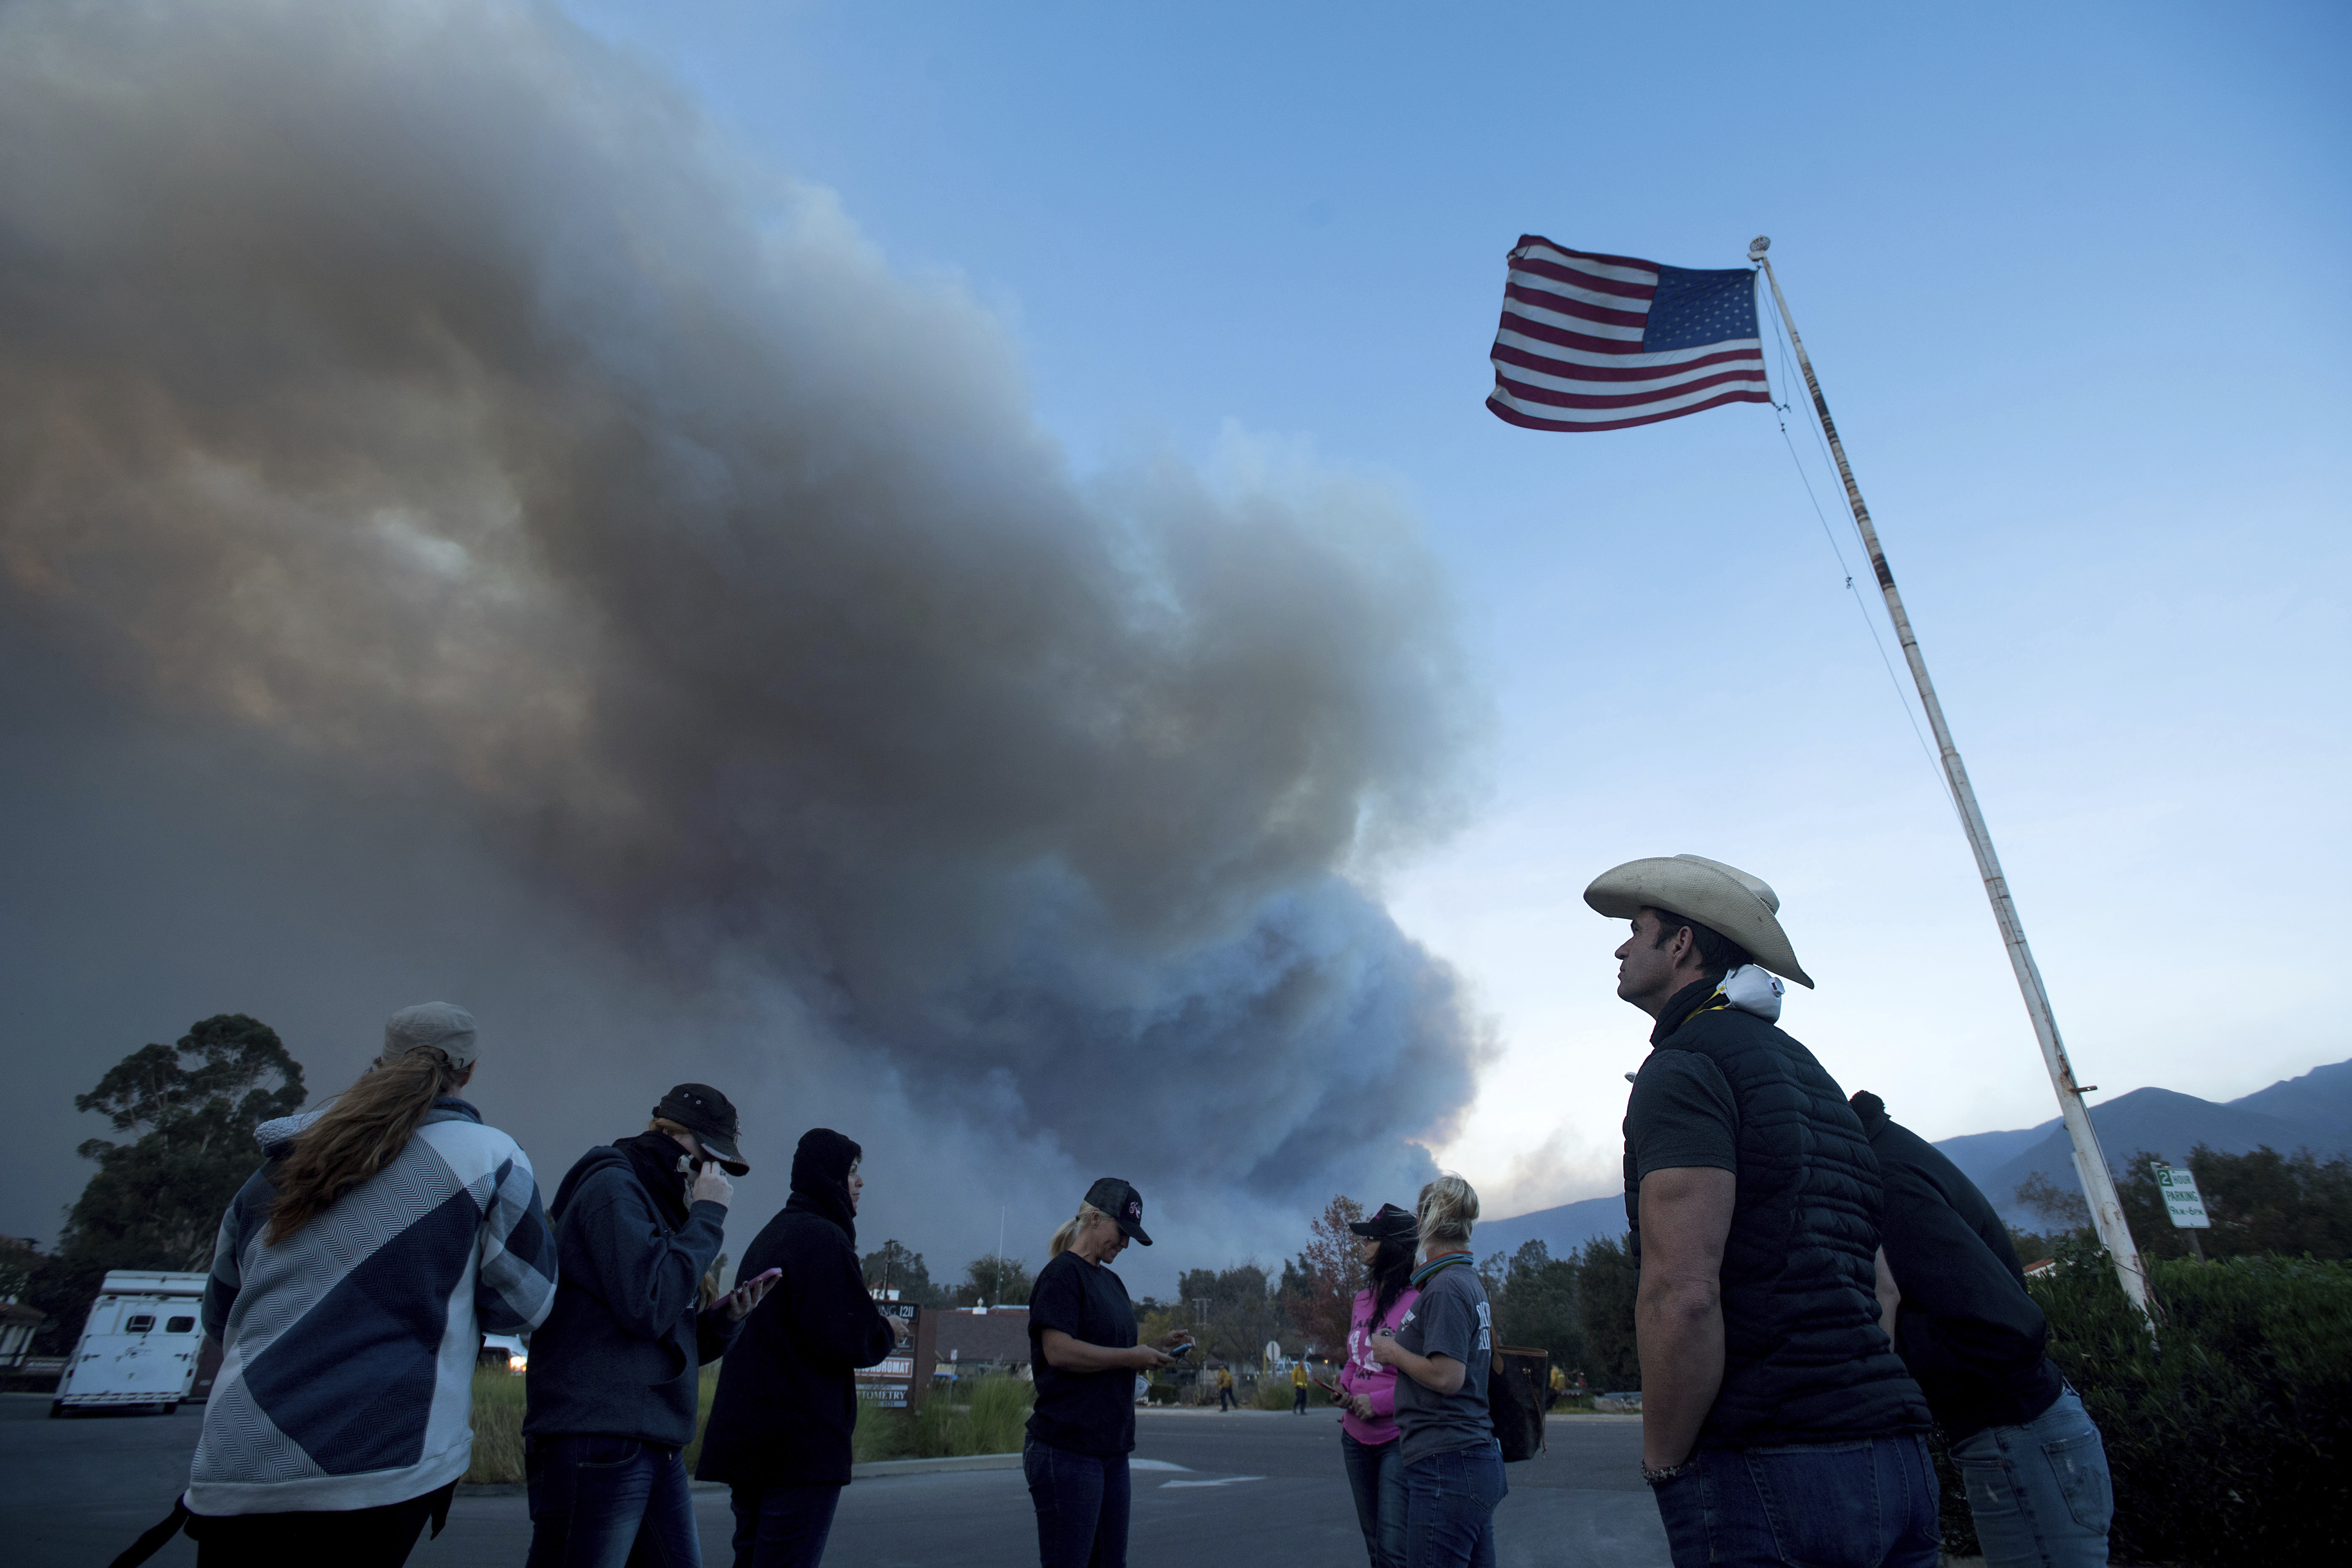 <div class='meta'><div class='origin-logo' data-origin='none'></div><span class='caption-text' data-credit='Noah Berger/AP Photo'>A group of horse rescuers who met on Facebook gather in a parking lot in Ojai, Calif., on Dec. 7. They estimate they've saved 100 horses.</span></div>